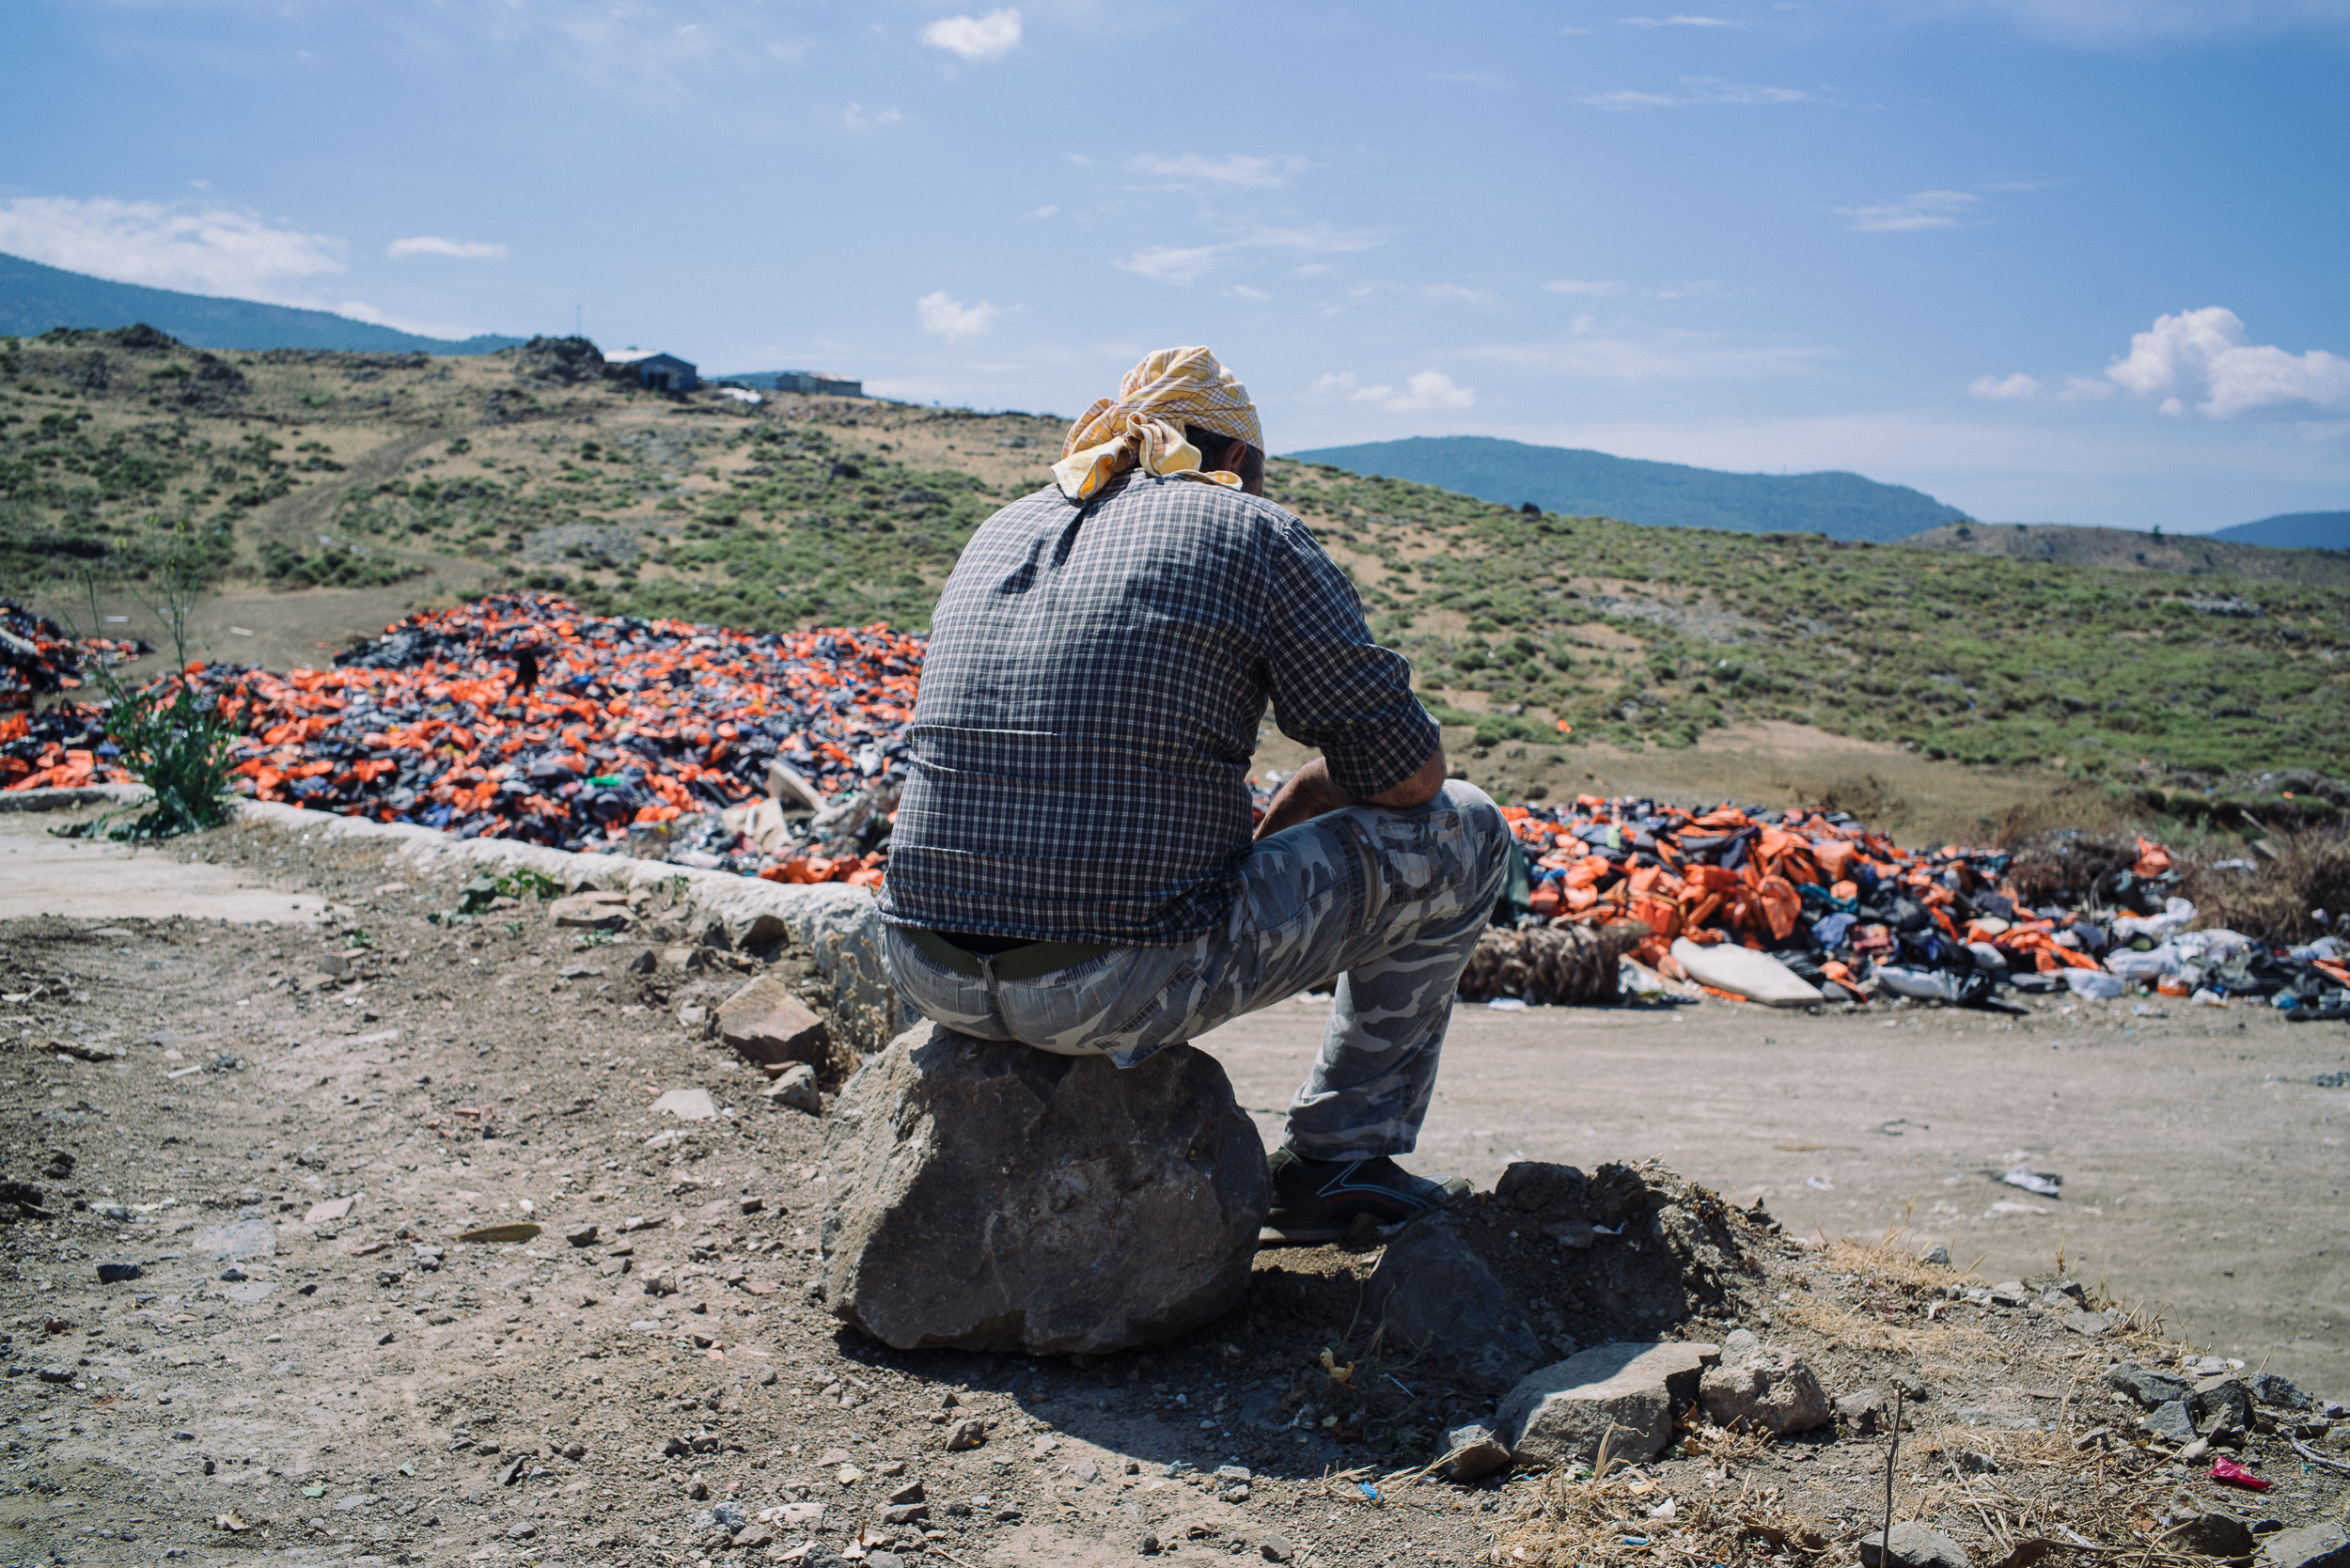 A local caretaker of the life vest cemetery waits in the blazing heat for the next arrival of trucks carrying discarded life vests from the shores to Molyvos.